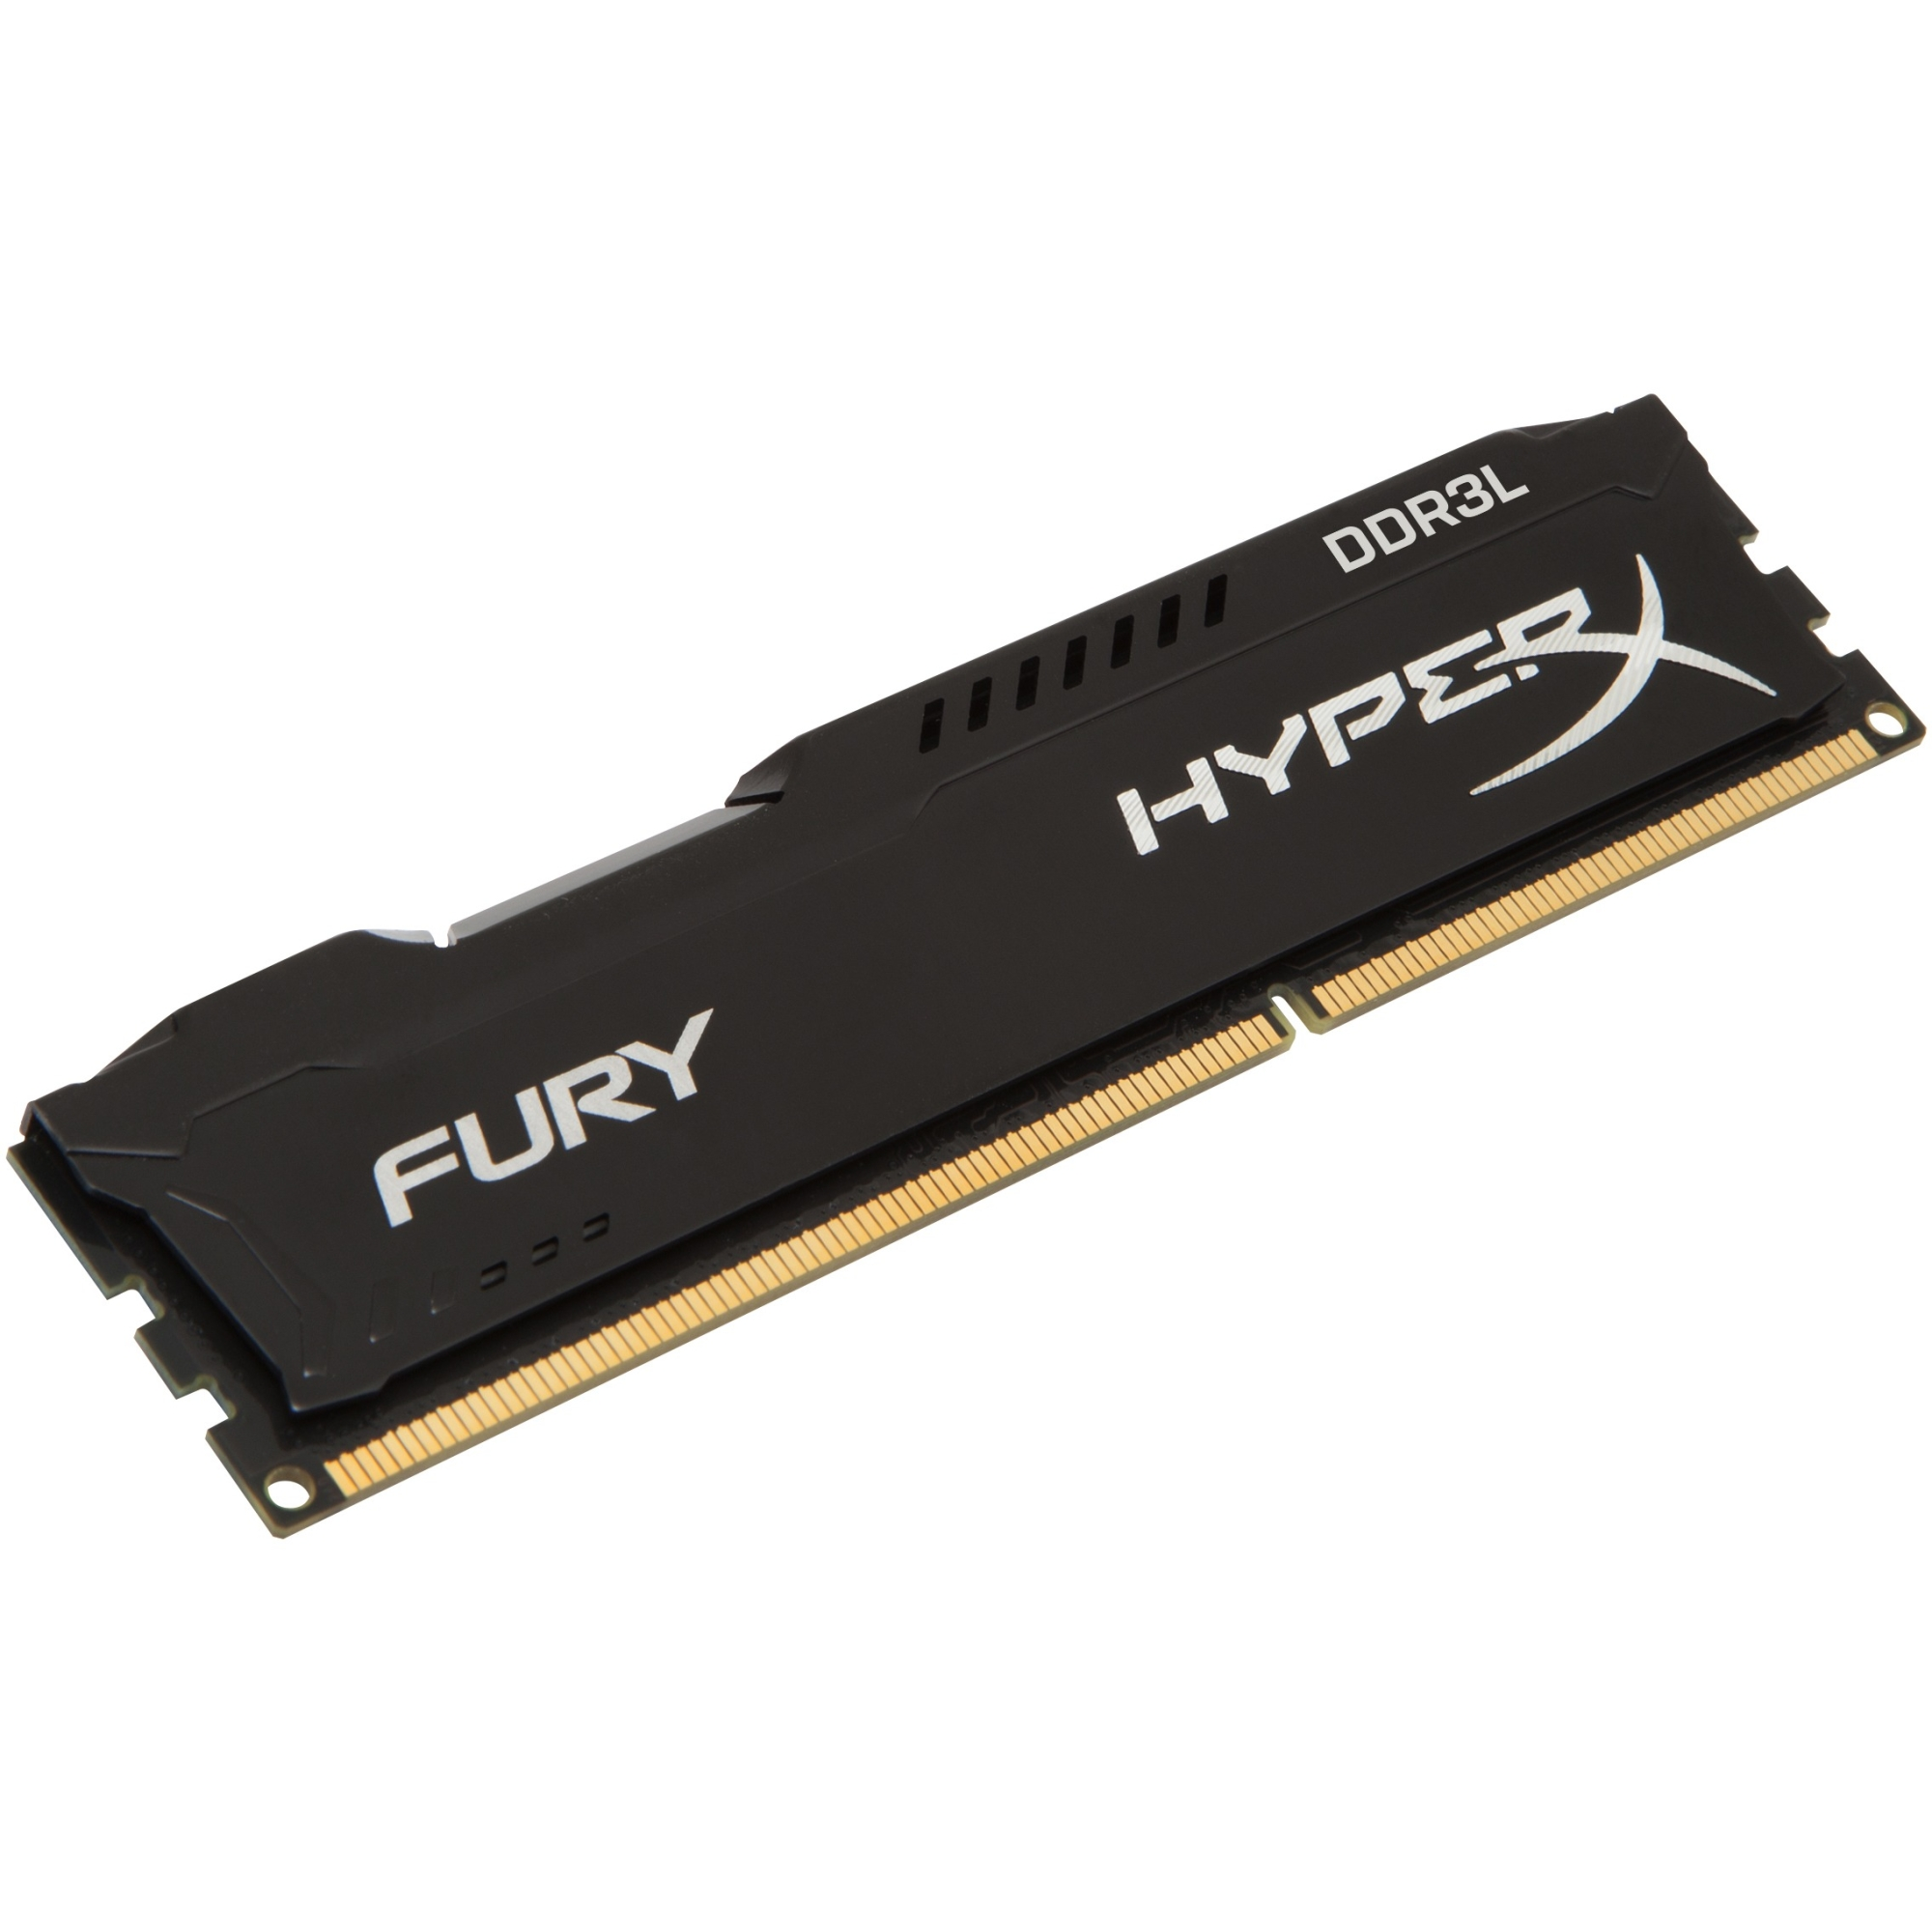 Kingston HyperX FURY Memory Low Voltage - 8GB Module - DDR3L 1600MHz - 8 GB (1 x 8 GB) - DDR3L SDRAM - 1600 MHz - 1.35